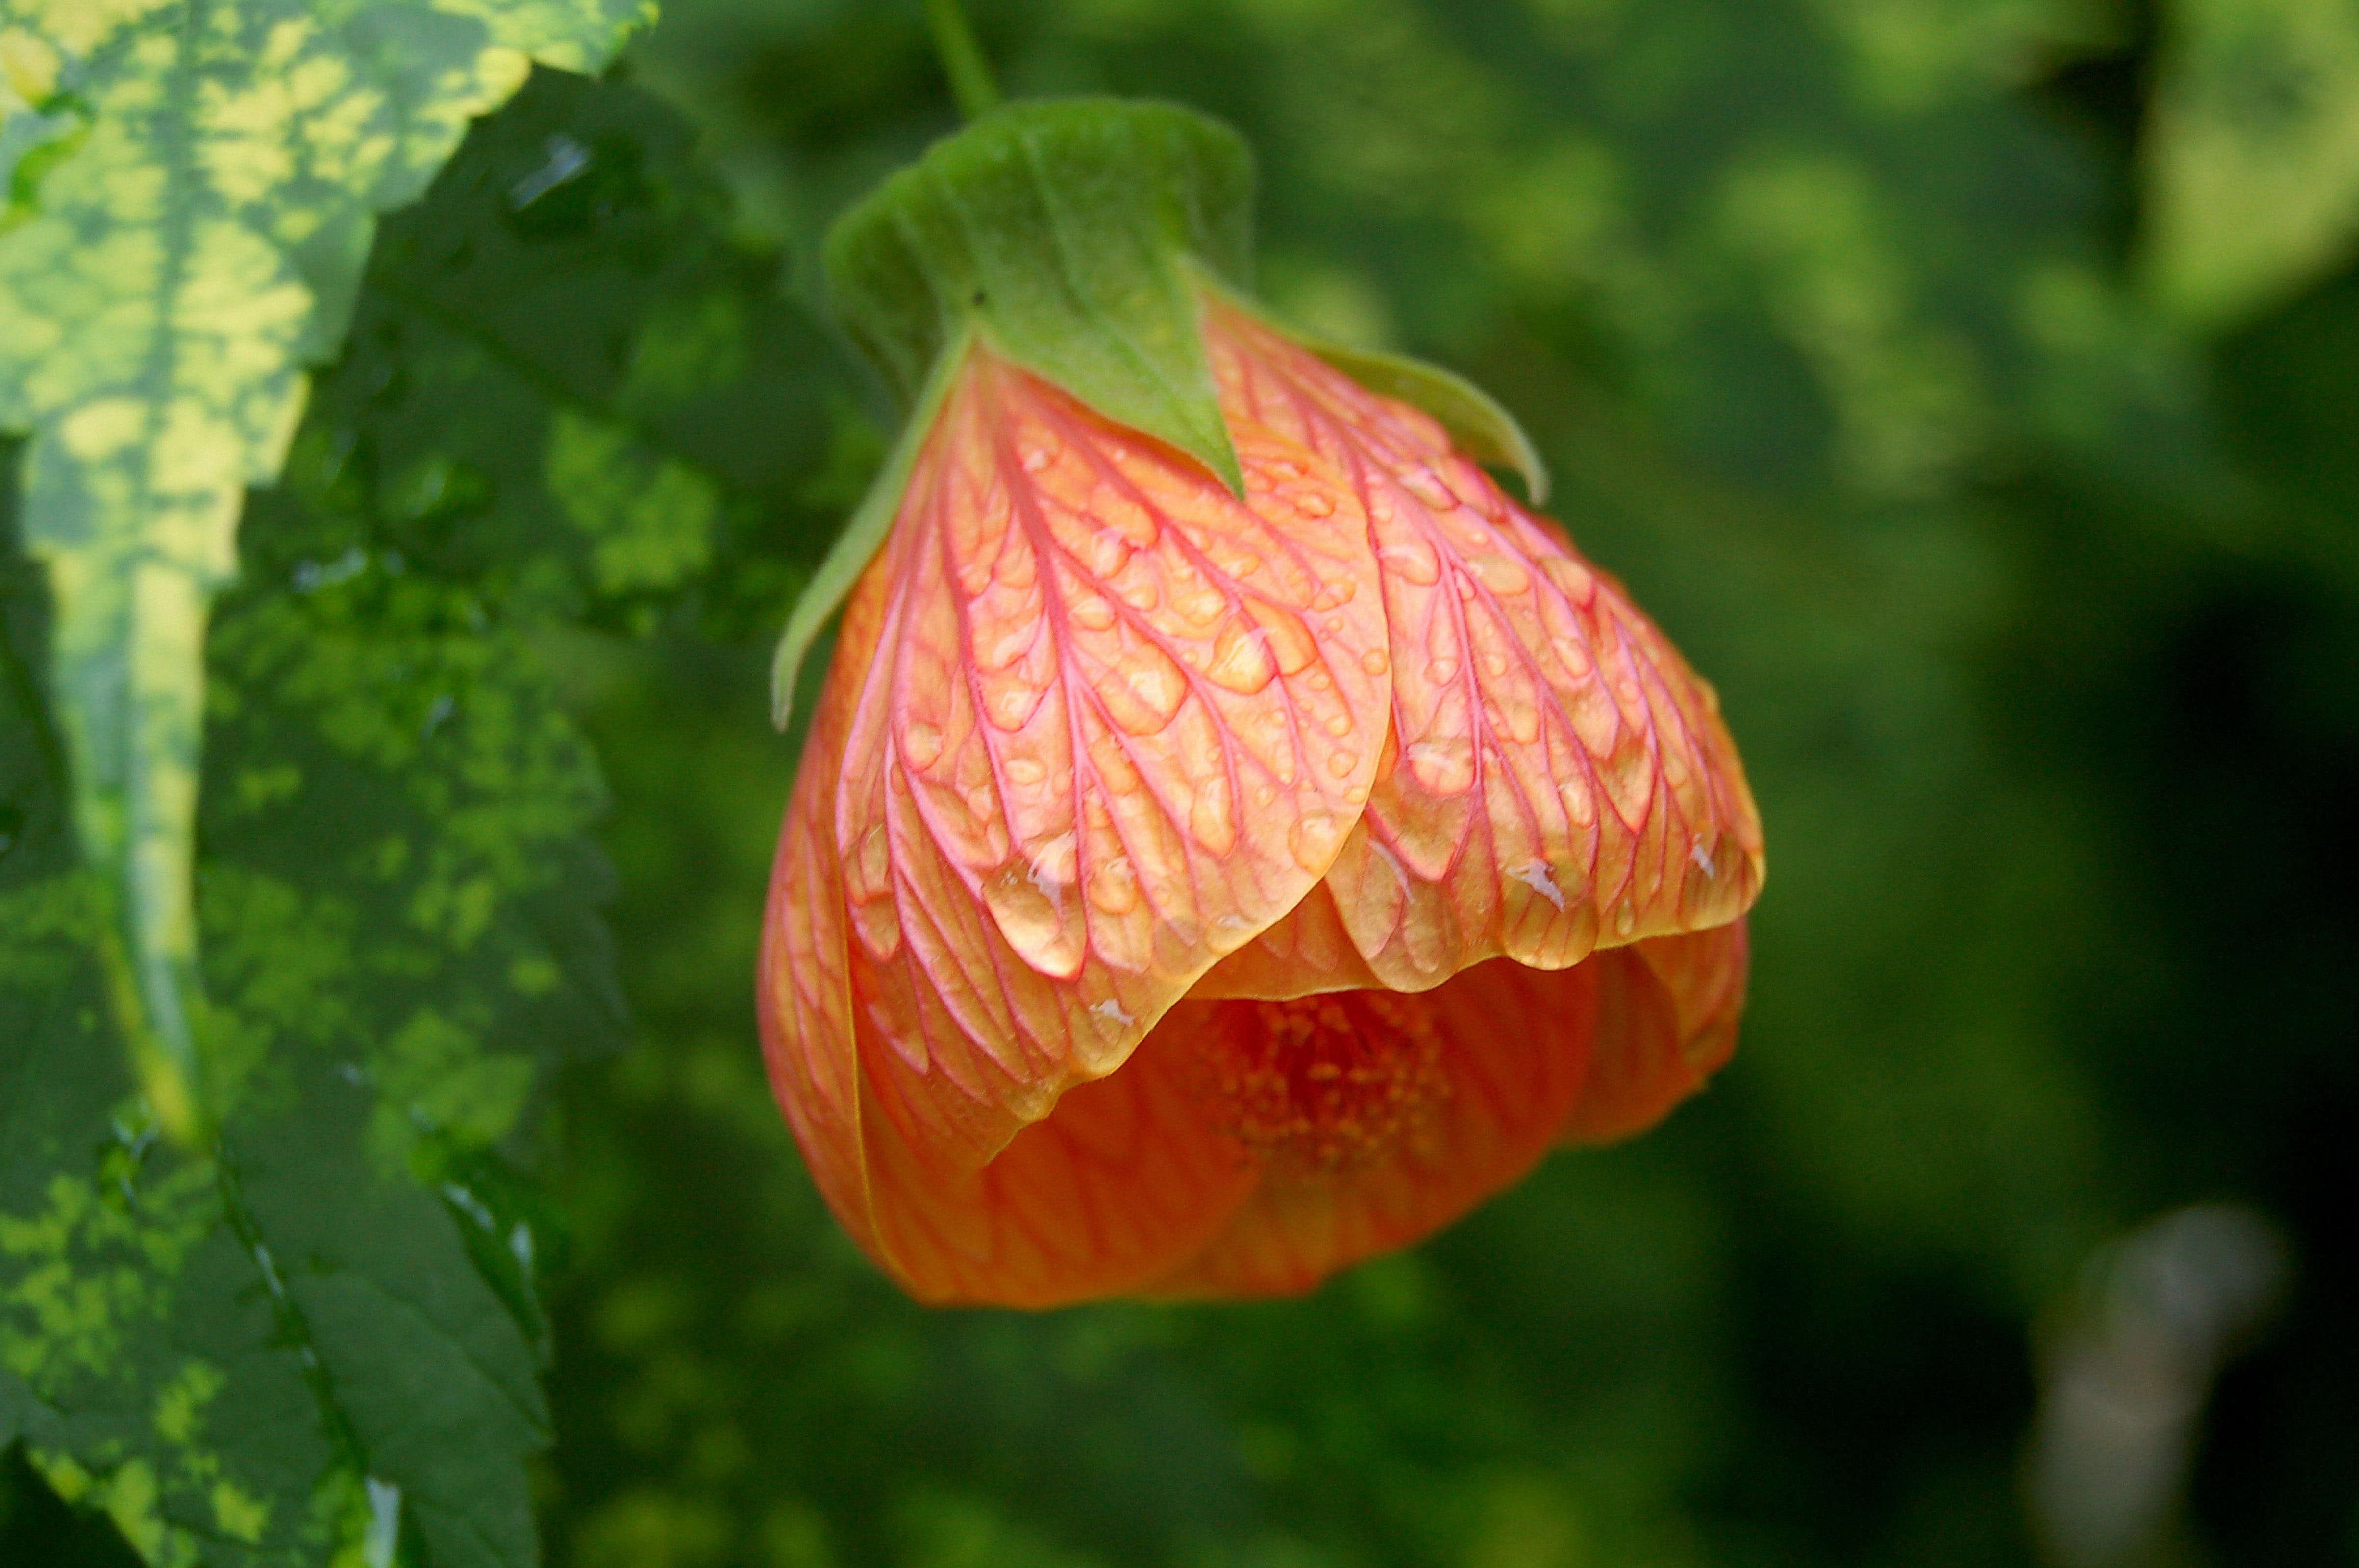 Orange Abutilon Flower in Close-up Photography